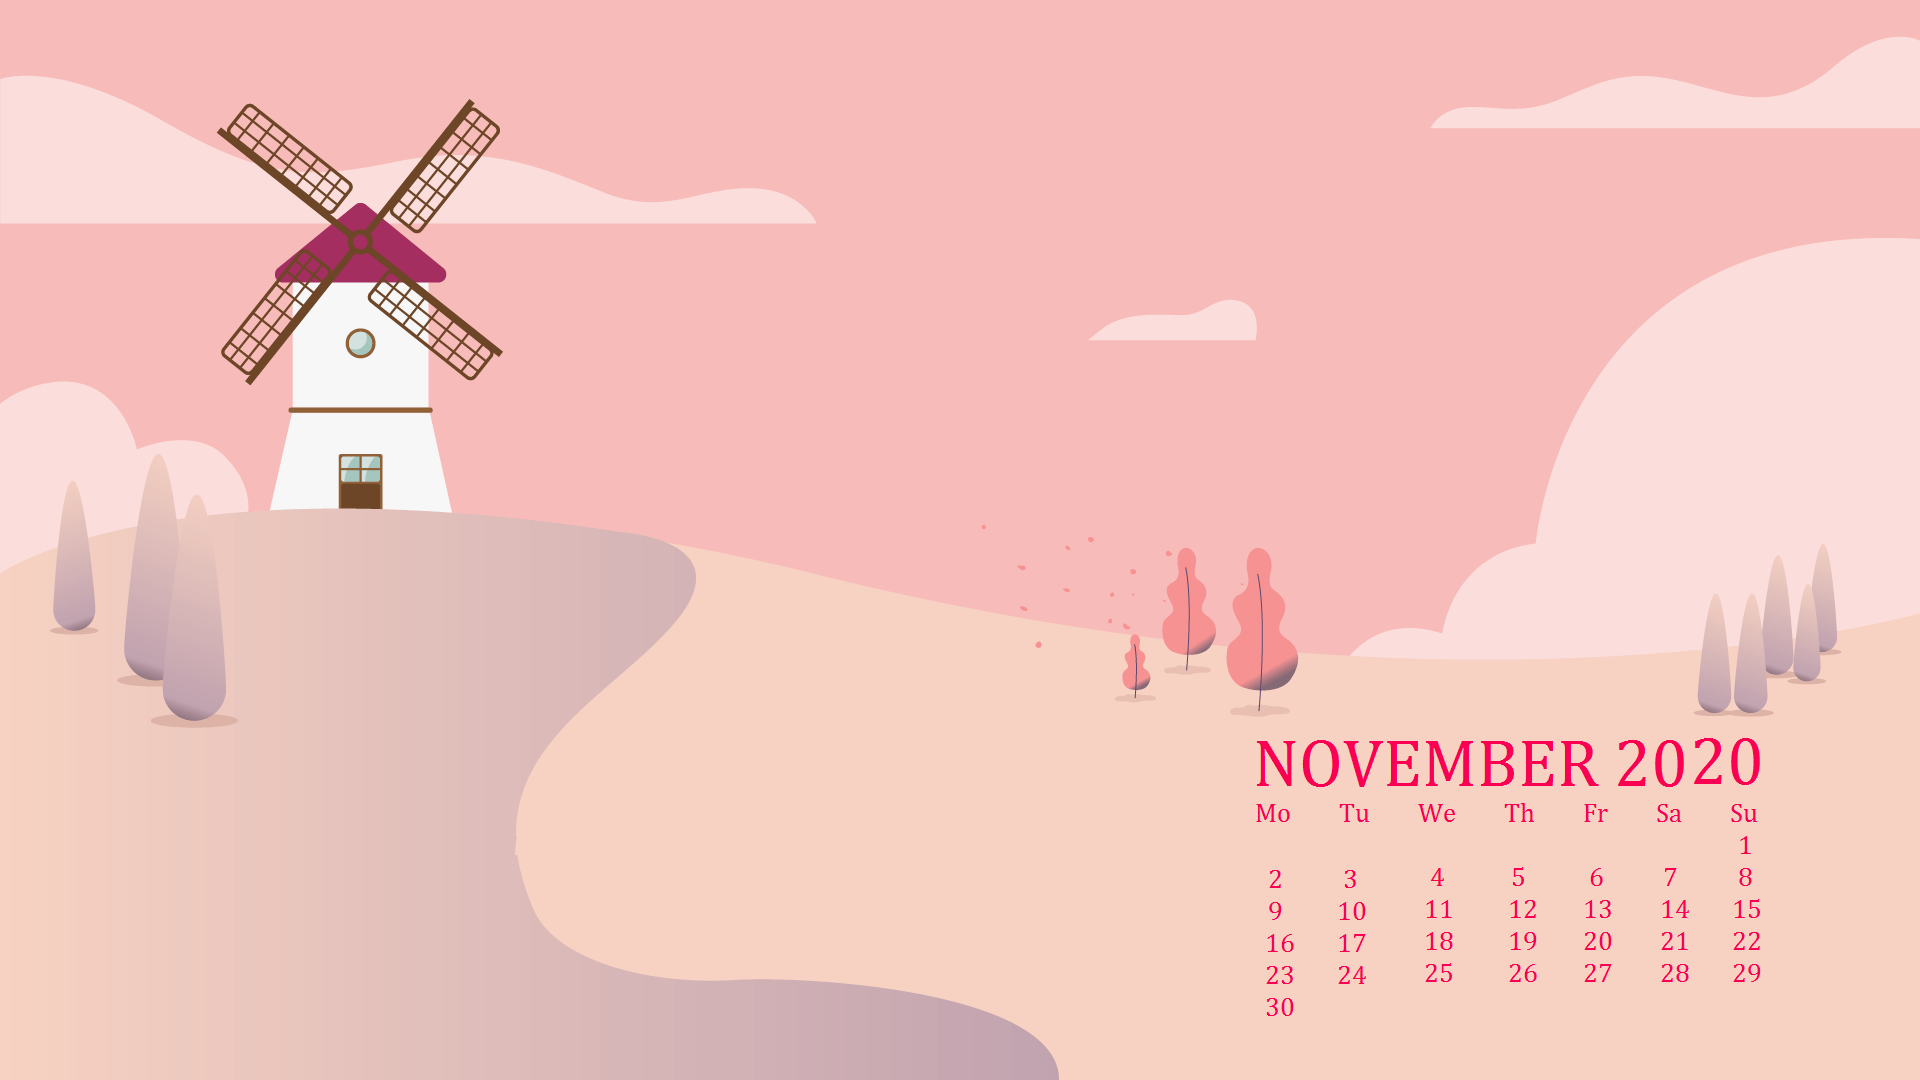 November 2020 Calendar Wallpaper For Laptop